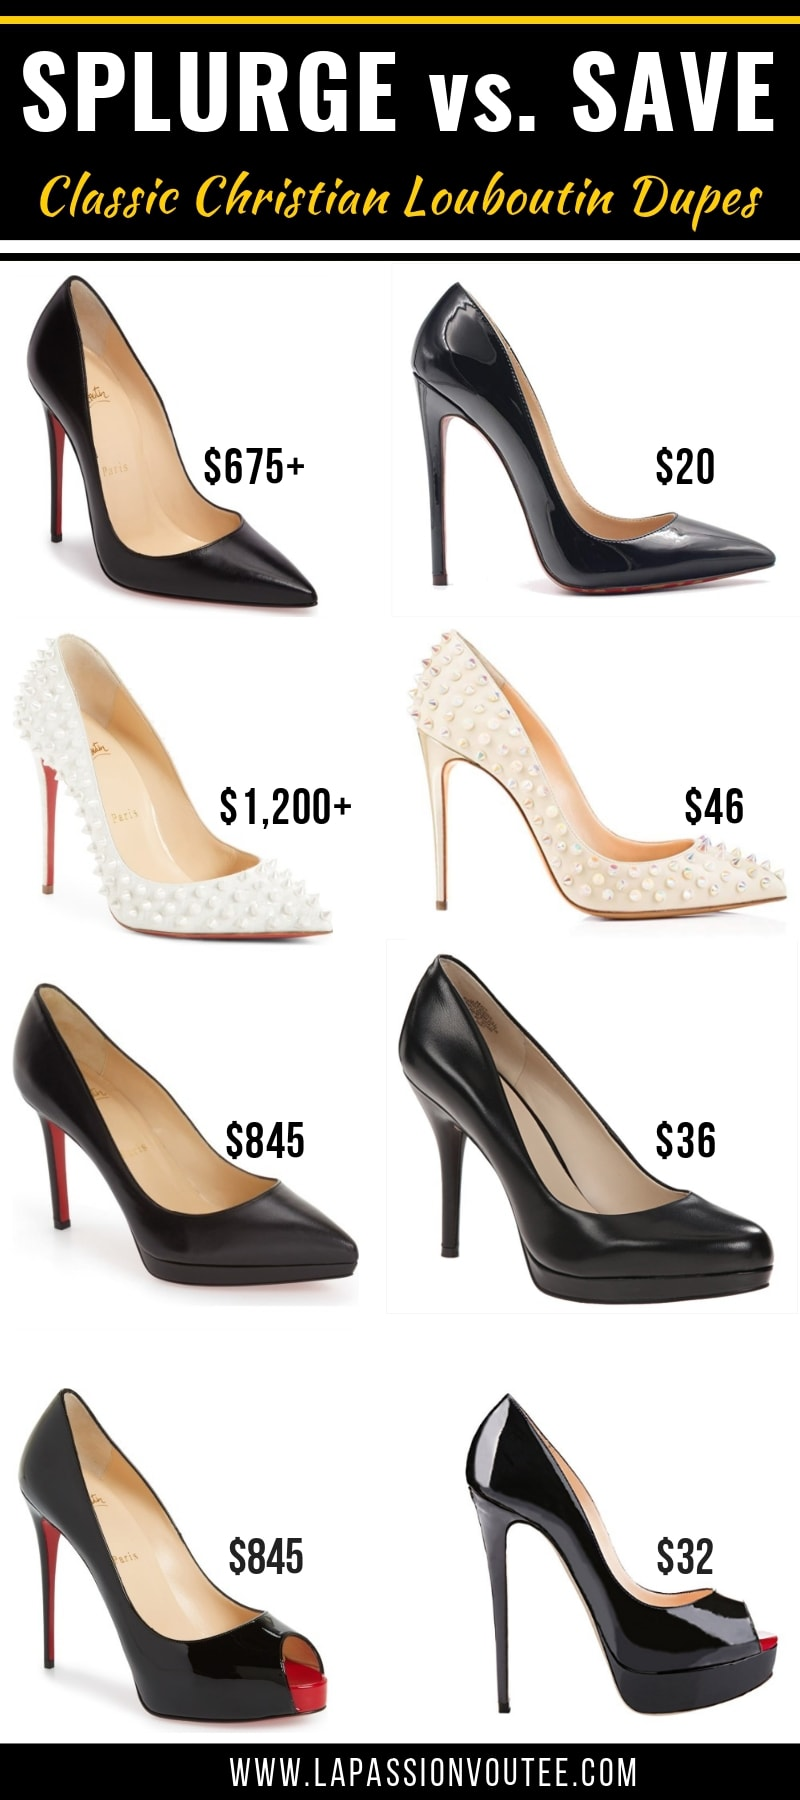 29ea4446e58c 15+ Christian Louboutin shoe dupes you NEED in your closet! This is the  ultimate